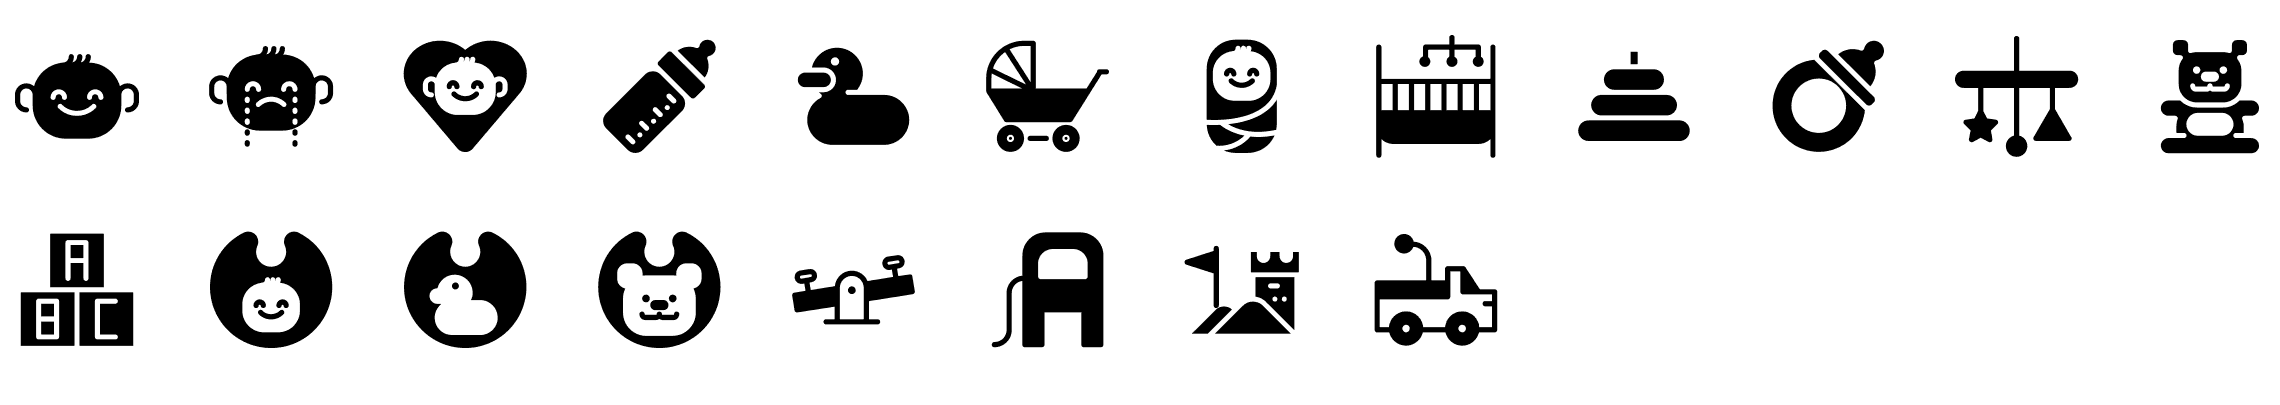 baby-glyph-icons-preview